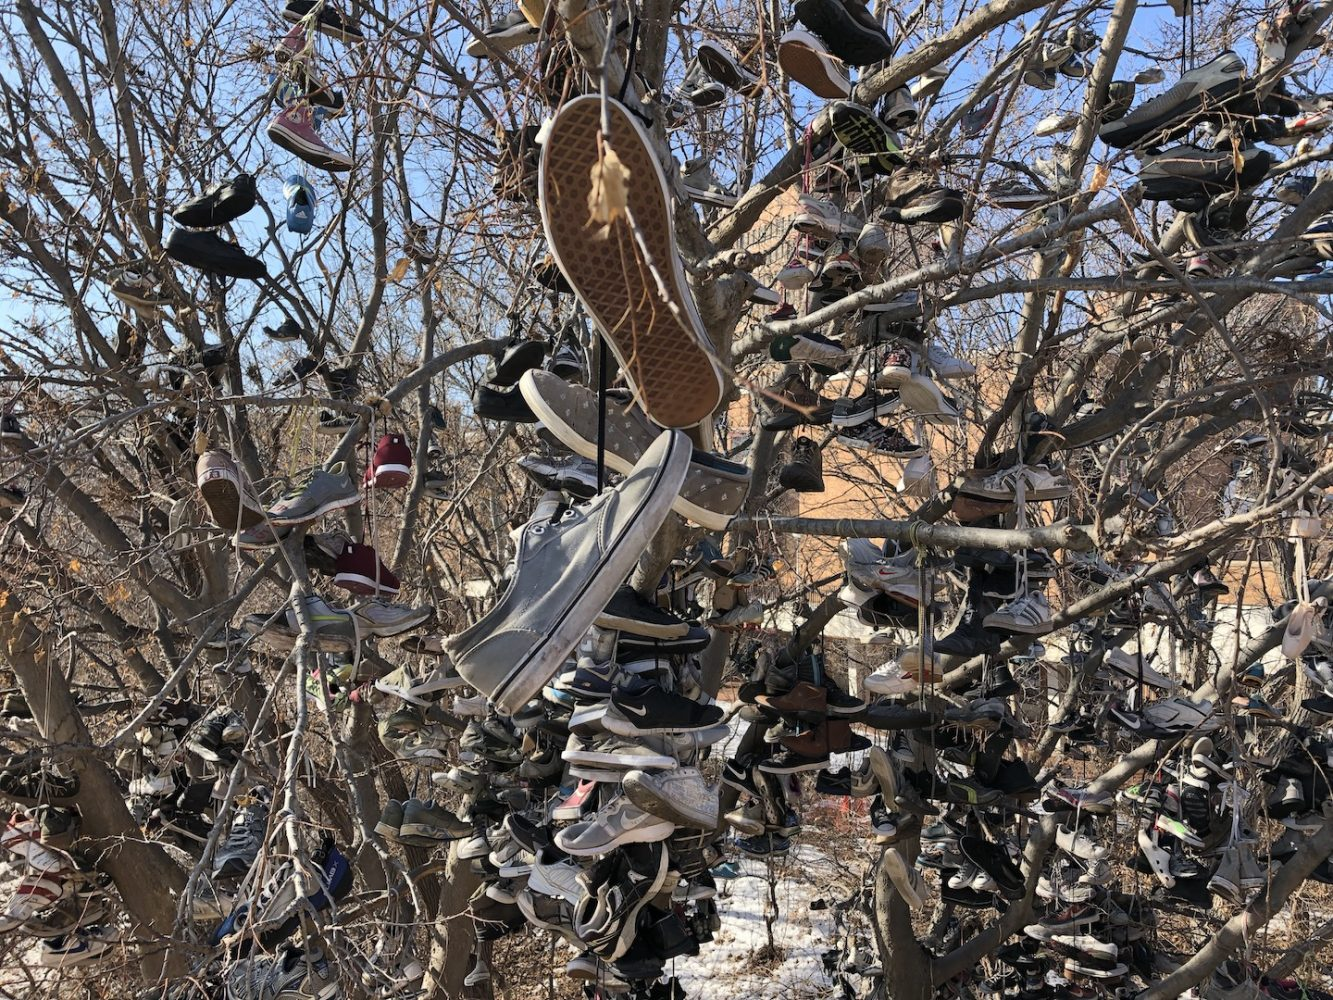 Hundreds of shoes hang from the branches of a tree.